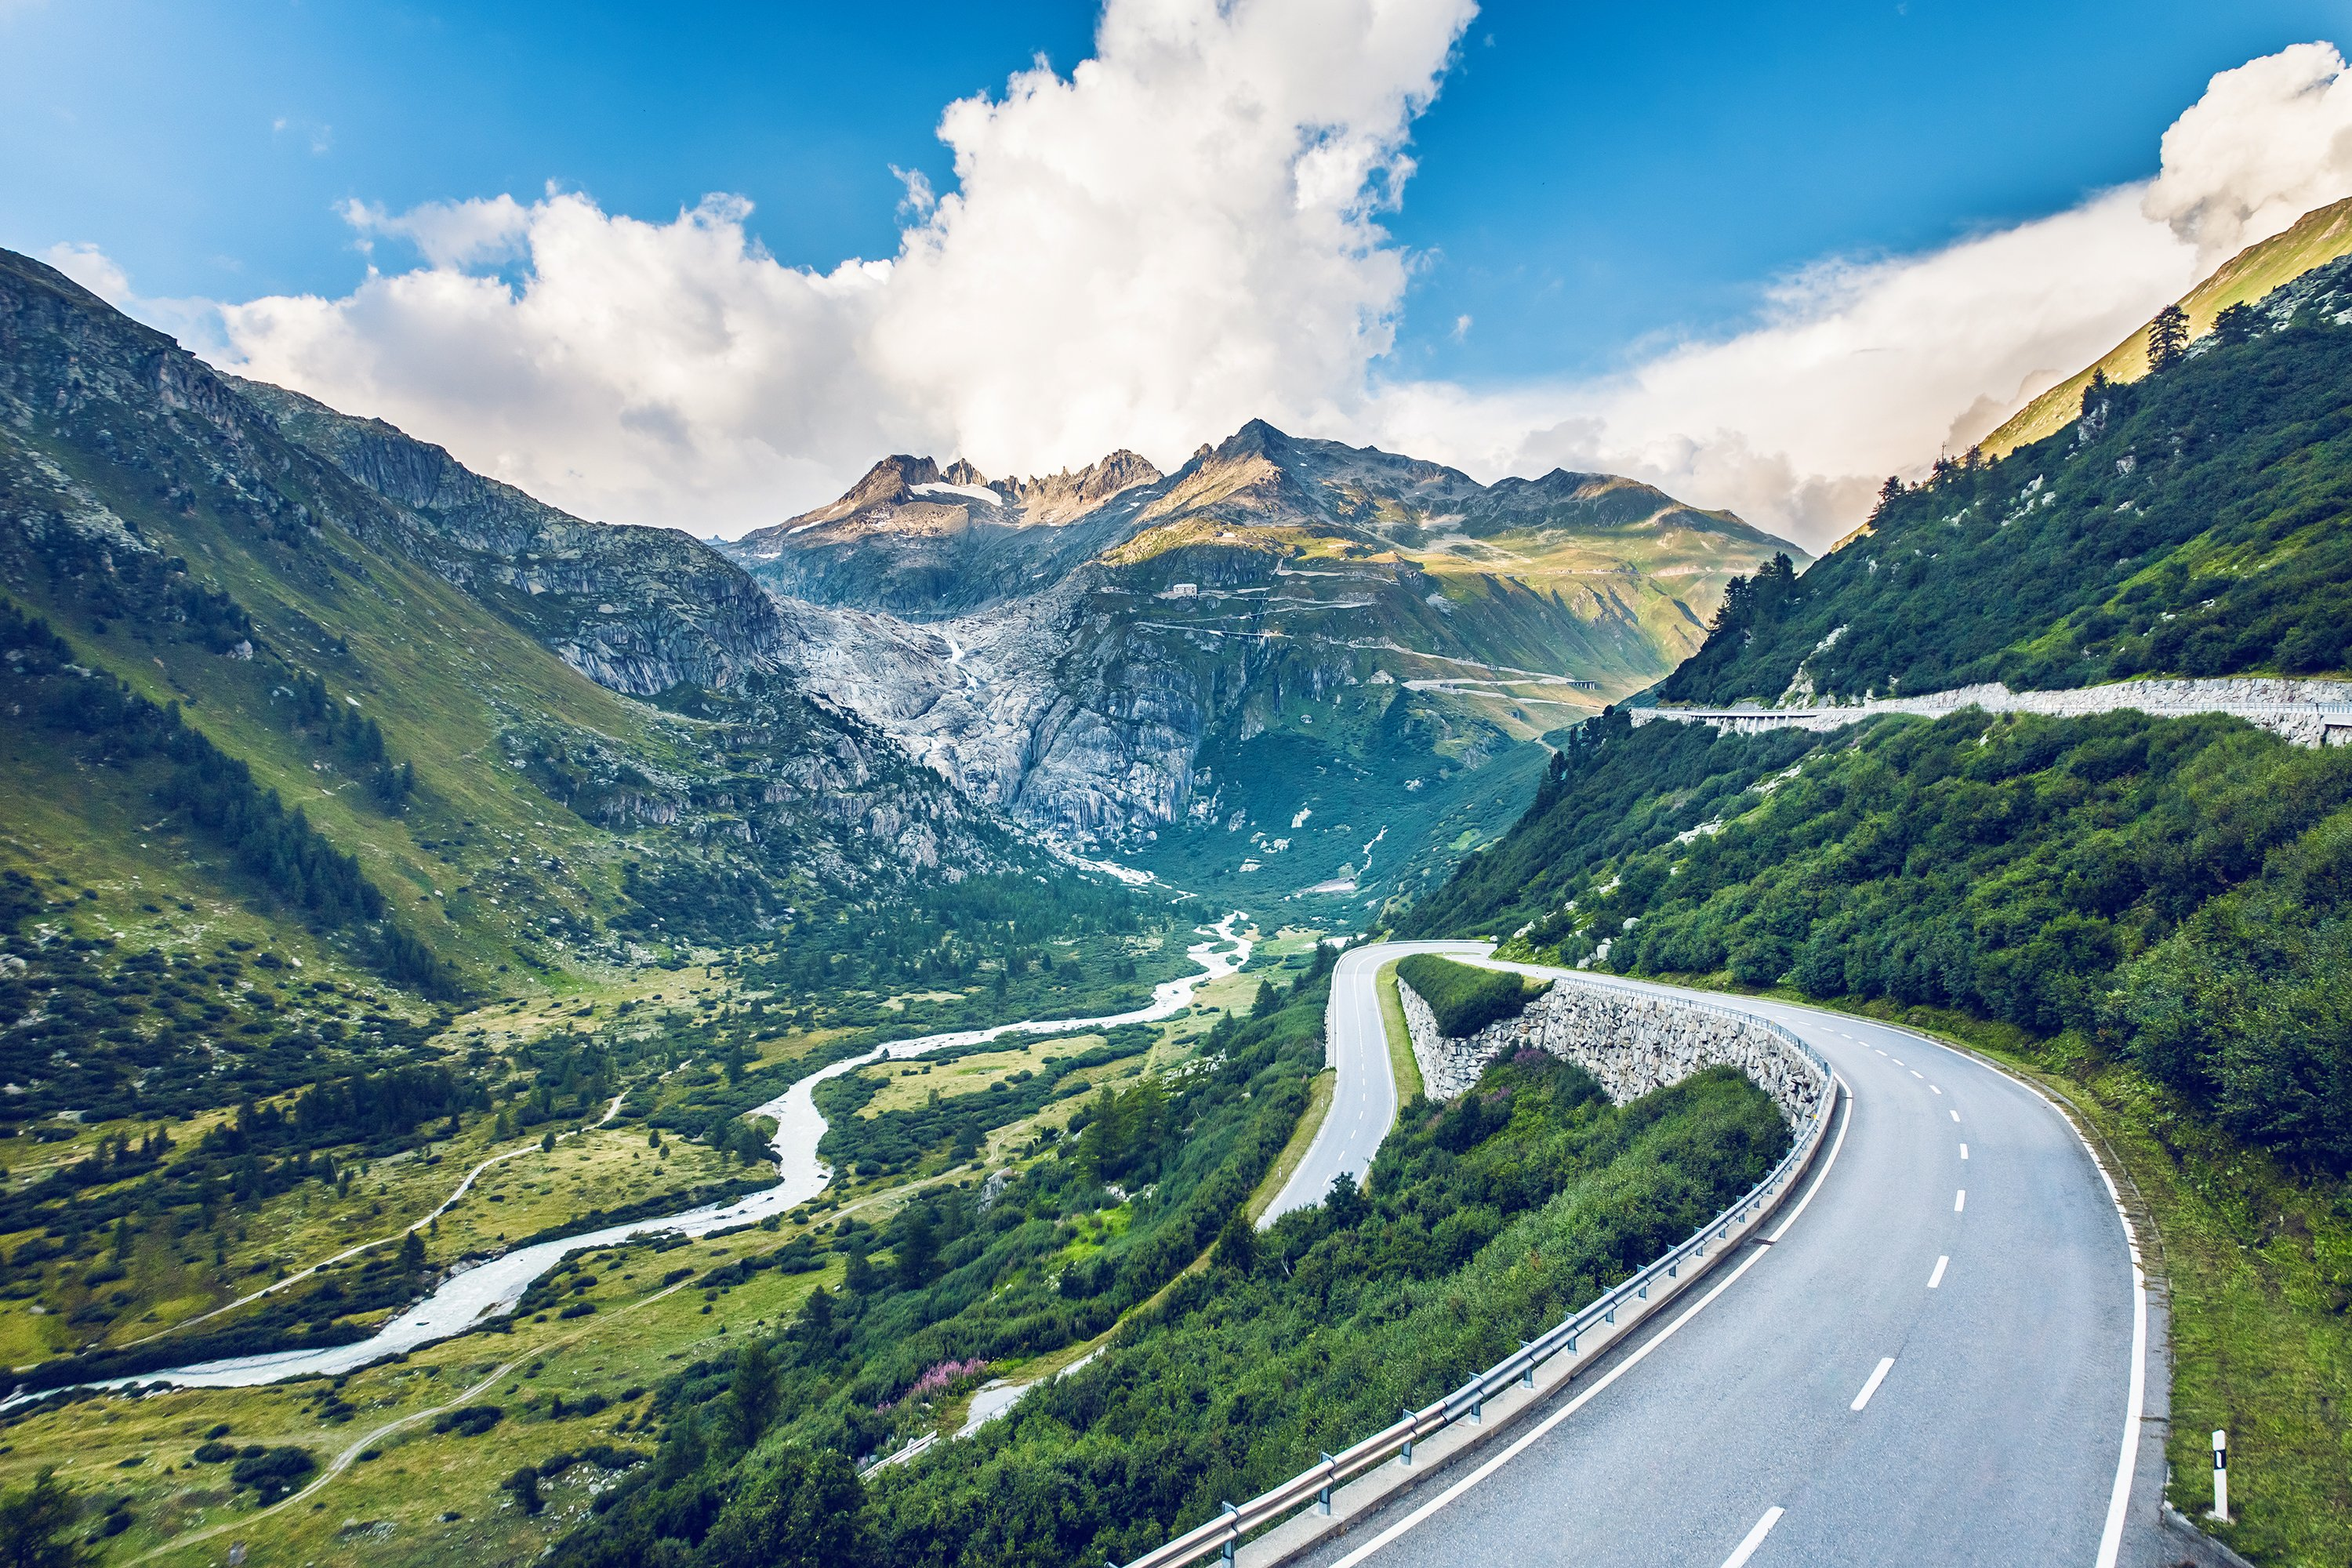 From the village of Oberwald at the very top of the Goms Valley to the summit of the Furka Pass, this road is one of the highest passes in Switzerland, connecting the canton of Valley with the canton of Uri.